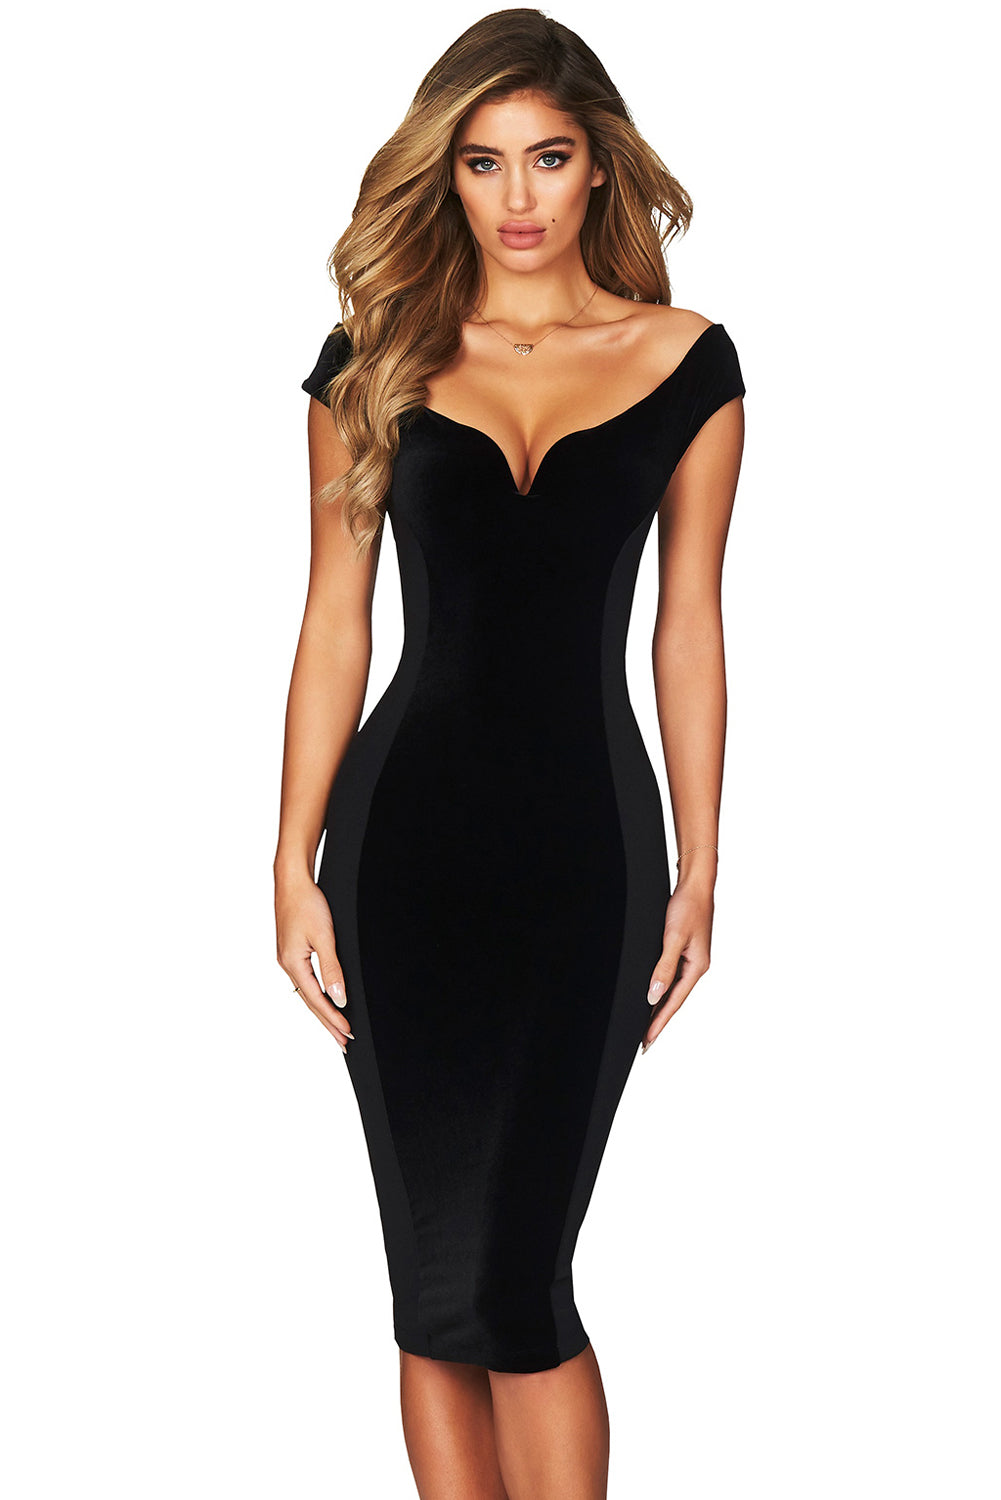 Show Hourglass Figure Black Off Shoulder Dress